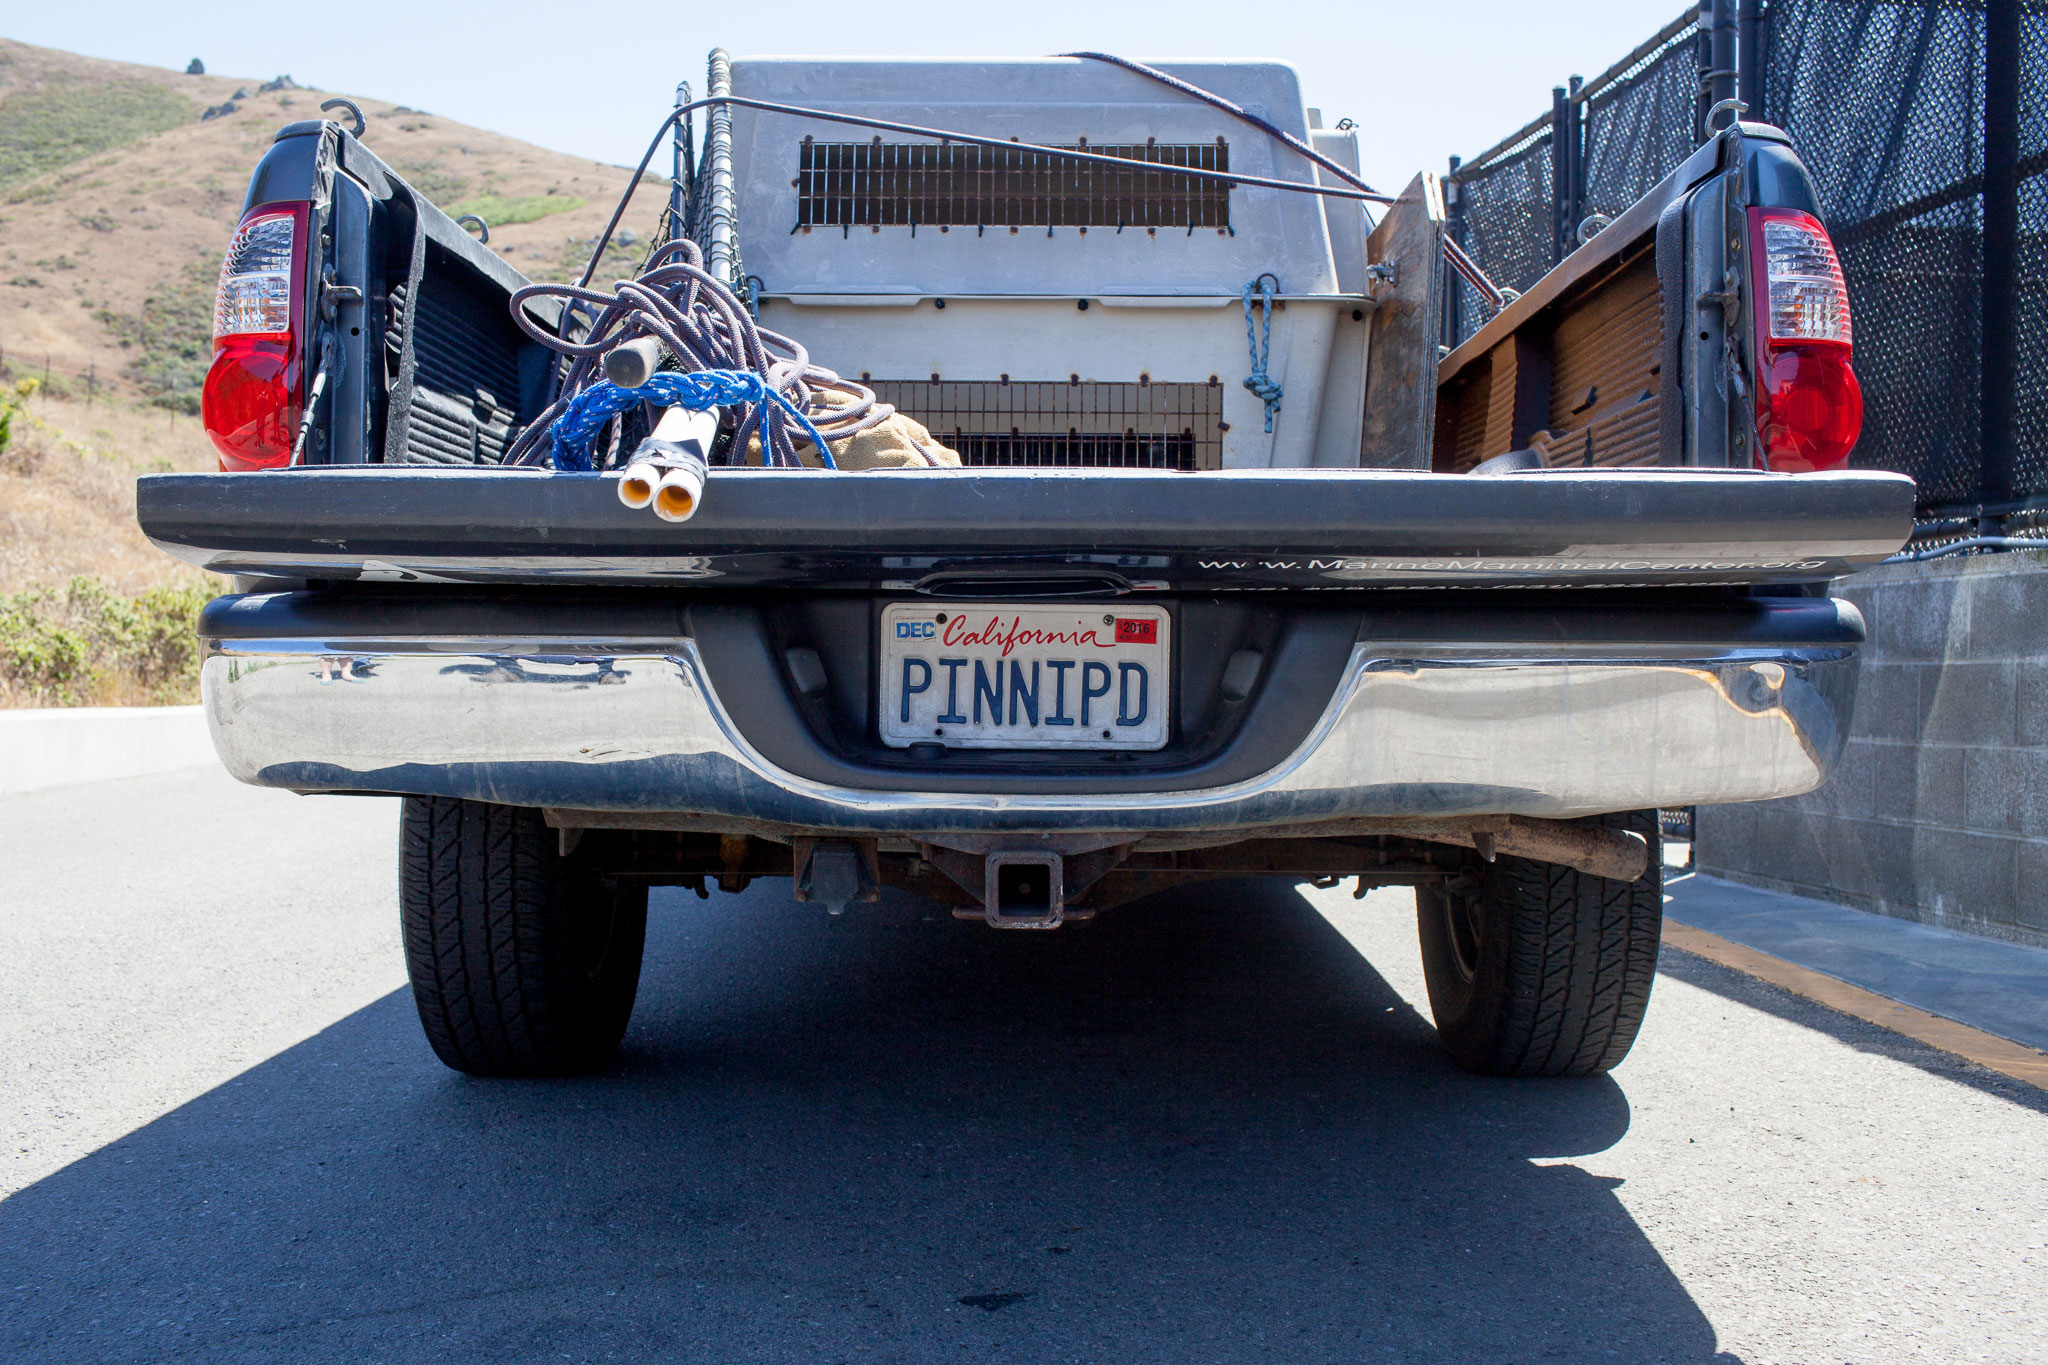 A pickup truck used by Marine Mammal Center staff to rescue injured wildlife sports a custom vanity plate. The full word—pinniped—means fin- or flipper-footed, and refers to seals, sea lions, and walruses.